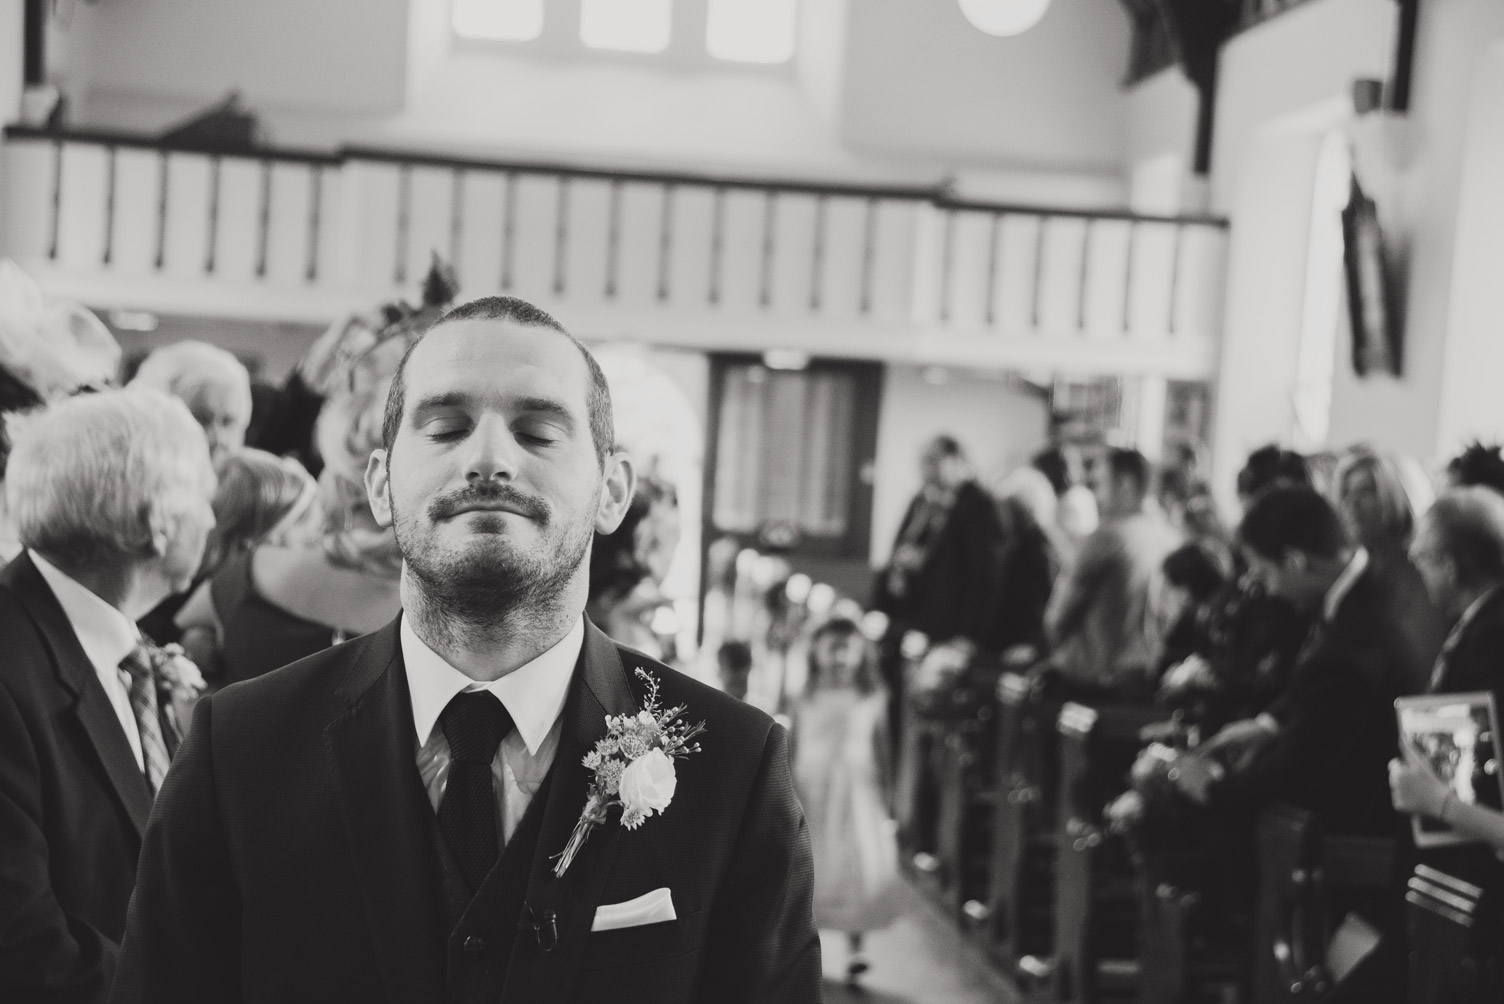 Groom waiting at the altar for bride in church ceremony. Wedding photography Co. Meath.